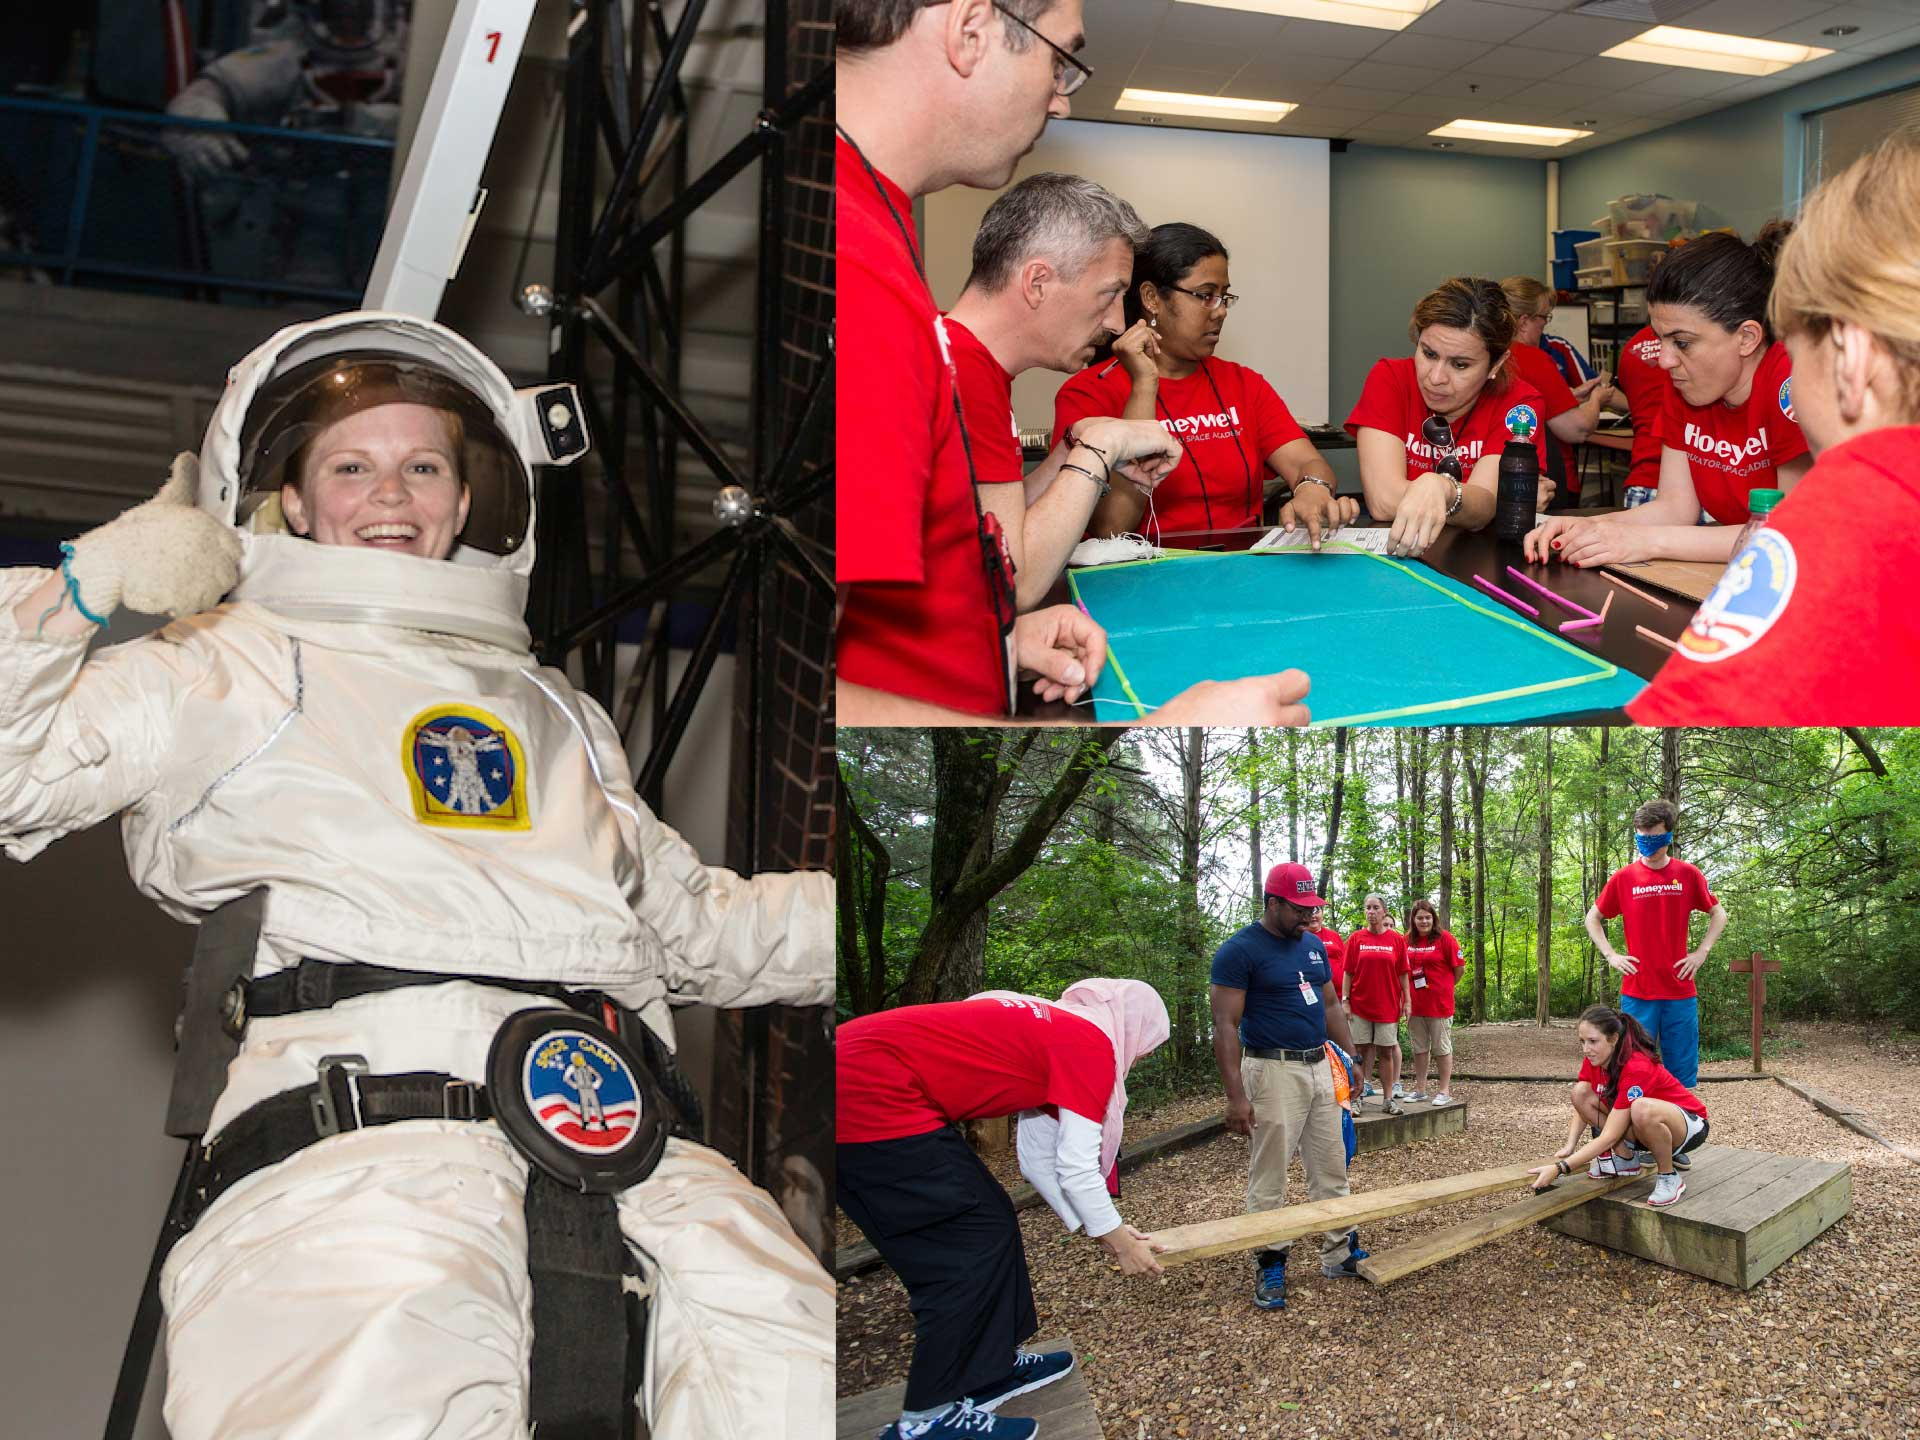 At Honeywell Educators at Space Academy, teachers are fully immersed in hands-on training such as astronaut simulations, launching and landing space shuttles, and survival tactics.